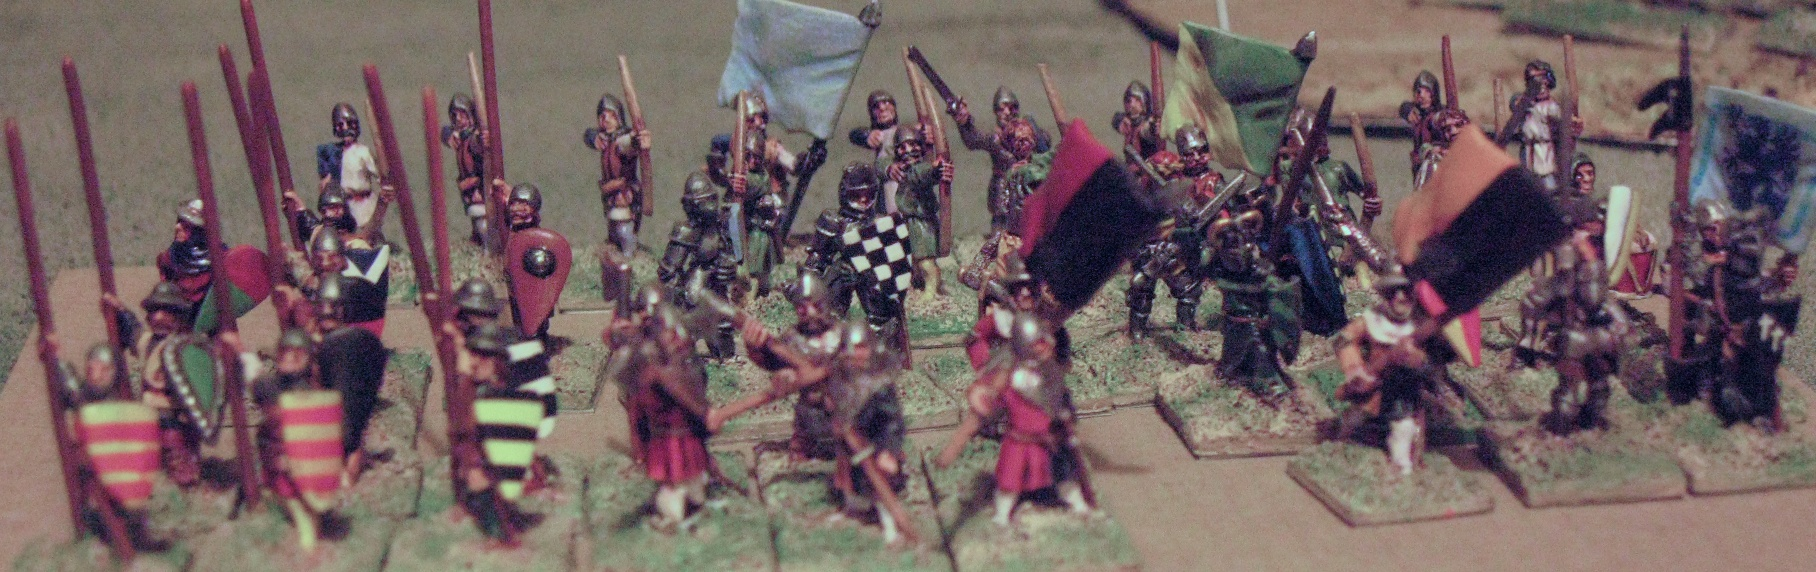 15mm Essex Infantry